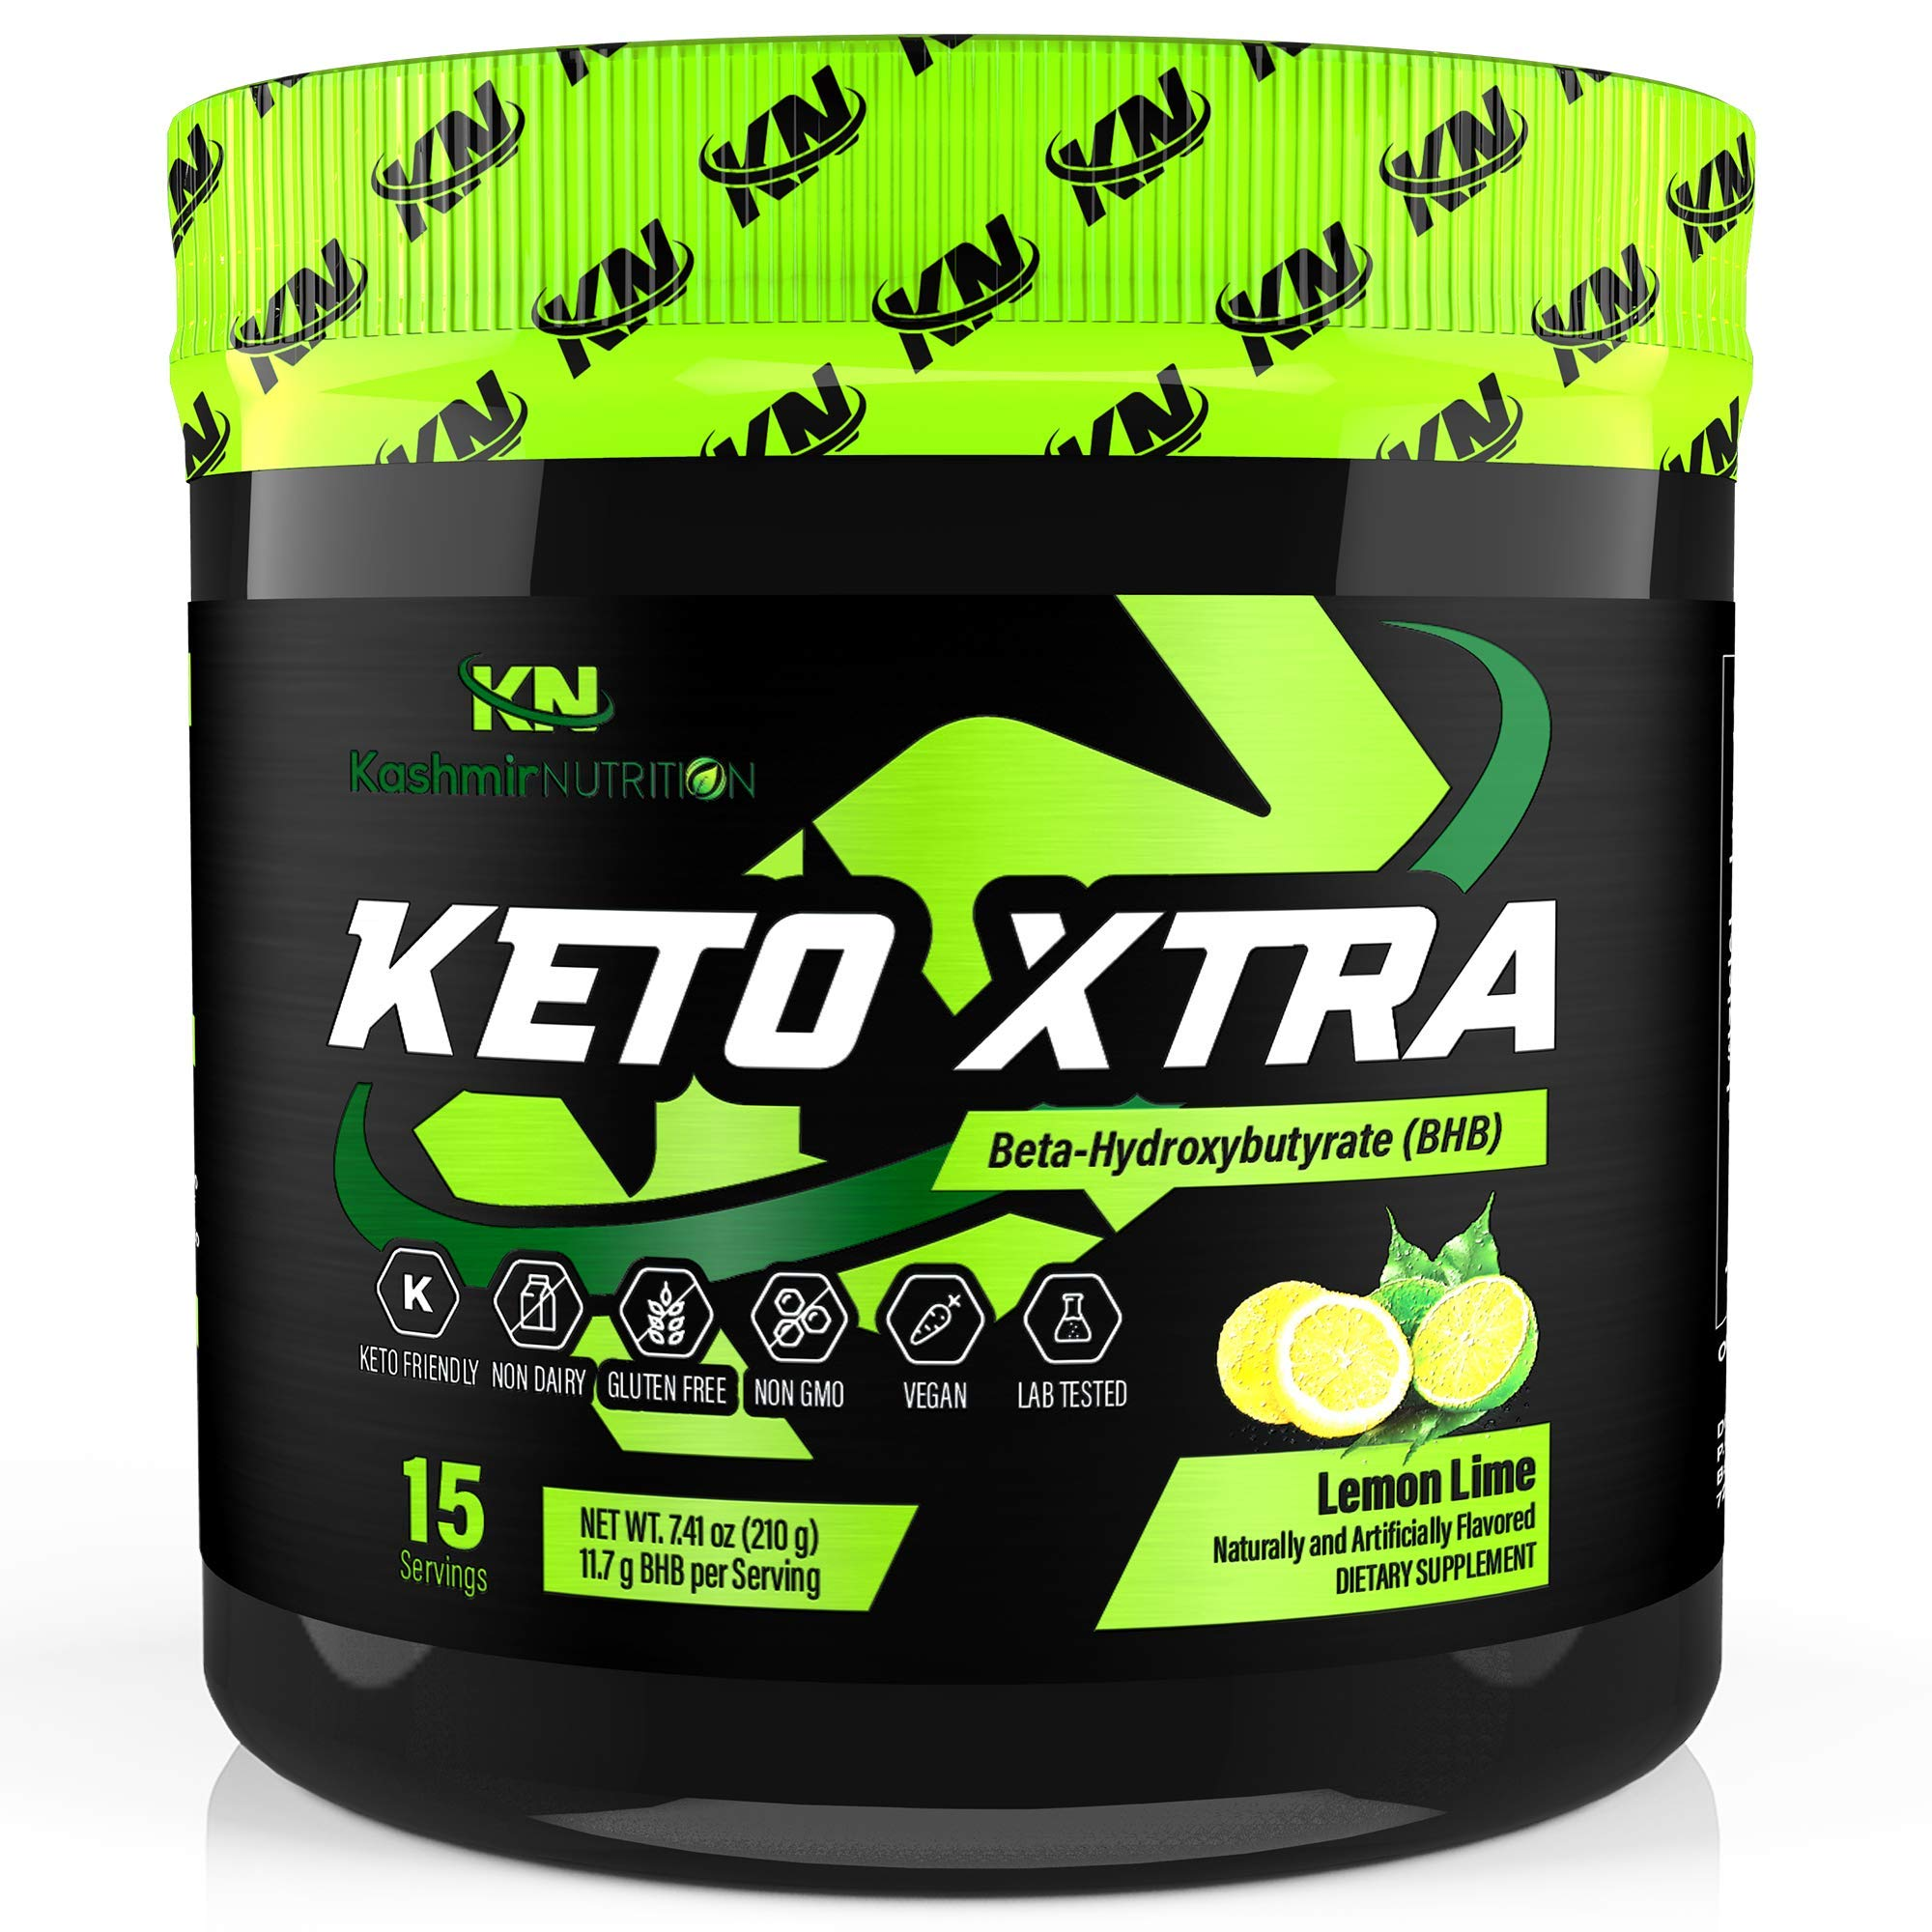 Keto Xtra Exogenous Ketones Supplement: Base BHB Salts Powder Drink Mix Perfect for Ketogenic Diet: Beta Hydroxybutyrate Formulated for Quick Ketosis, Energy, Fat Burn, and Focus: Lemon Lime by Keto Xtra